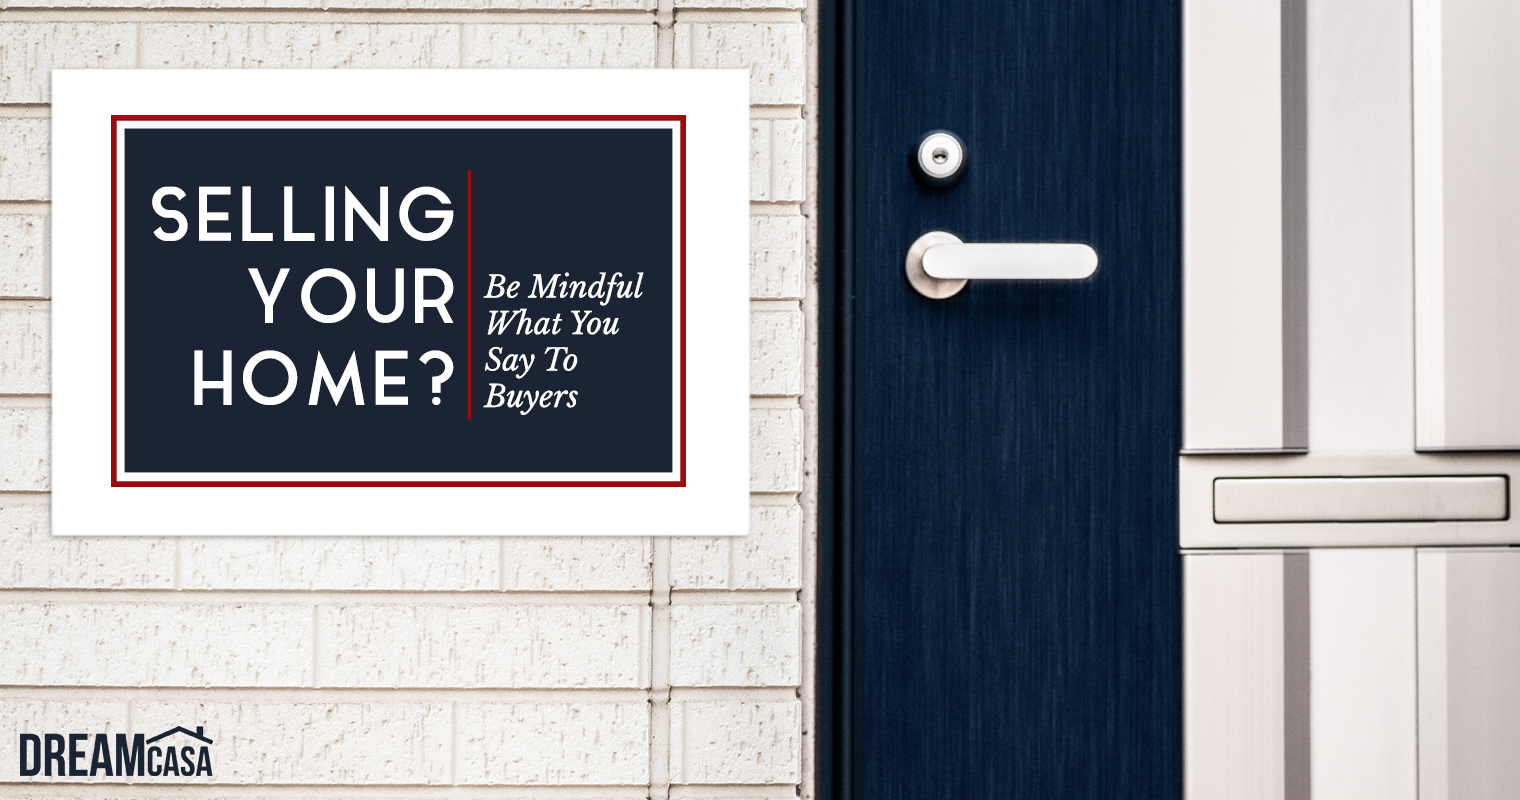 Selling Your Home? Be Mindful What You Say To Buyers